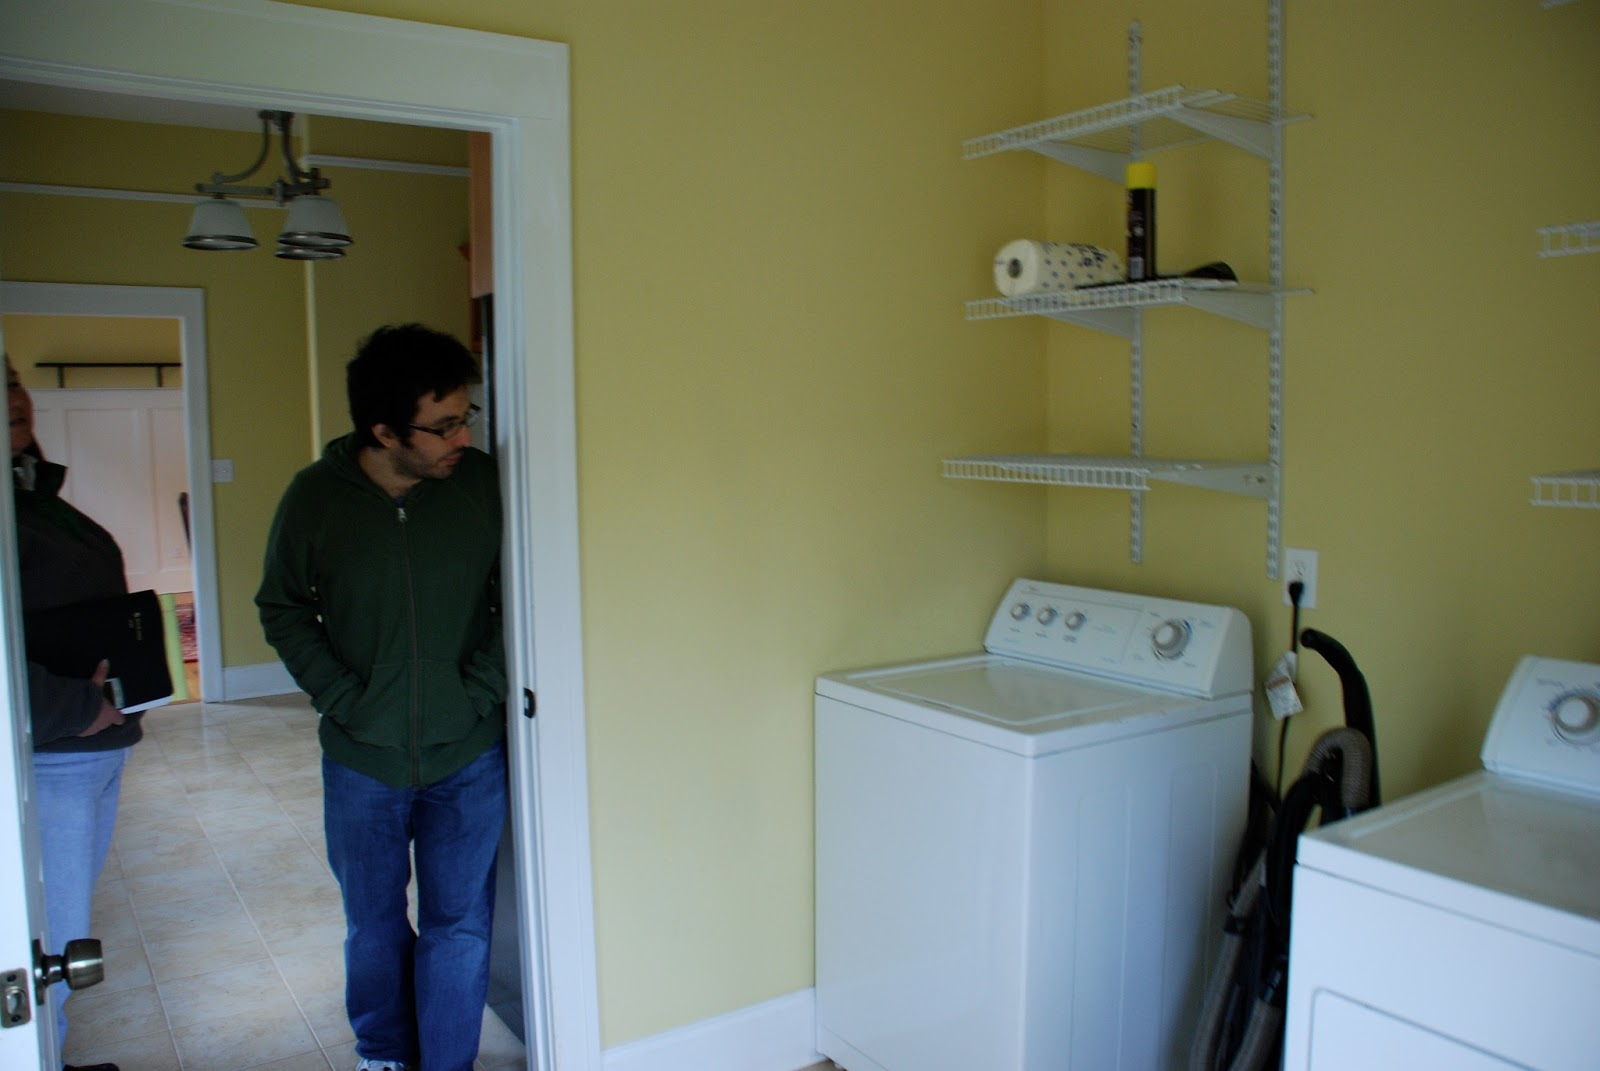 Laundry Room When We First Saw The Home In 2009 Whole House Was Painted Hot Urine As You Can See It Just A Pass Through To Outside With